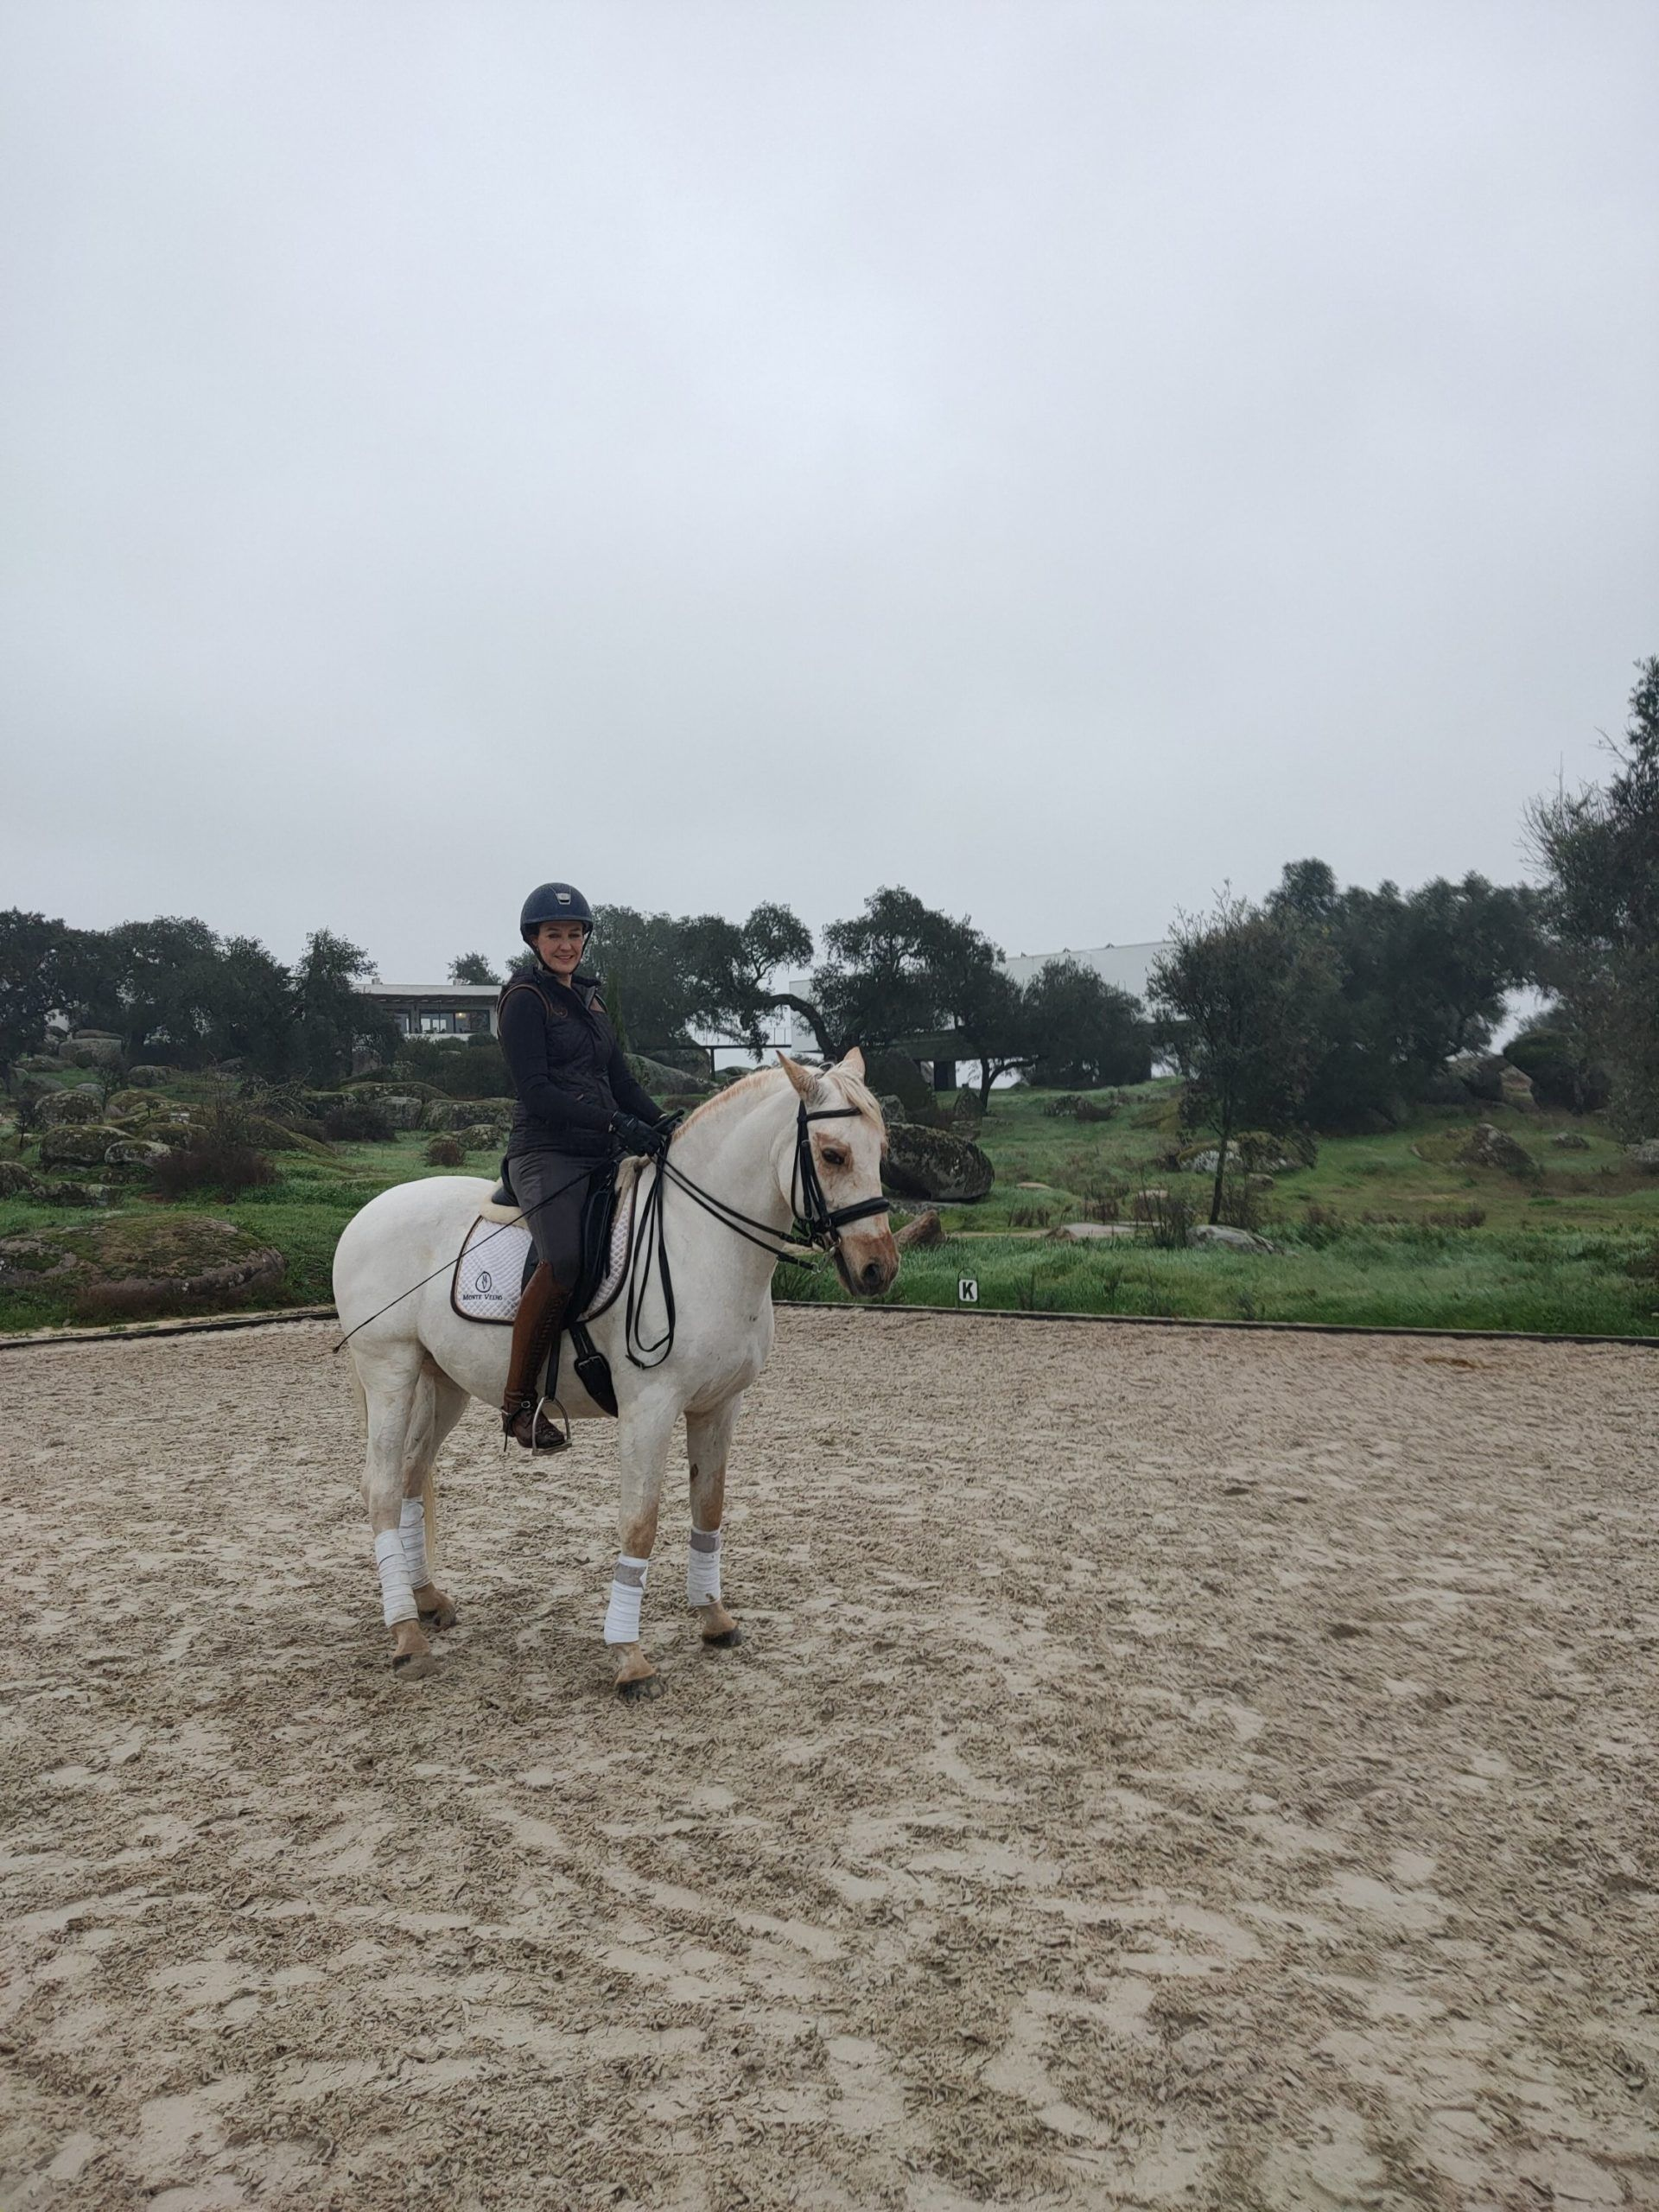 An Equestrian Holiday At Monte Velho The Sand Arena Ballerina In 2020 Equestrian Holidays Riding Holiday Equestrian